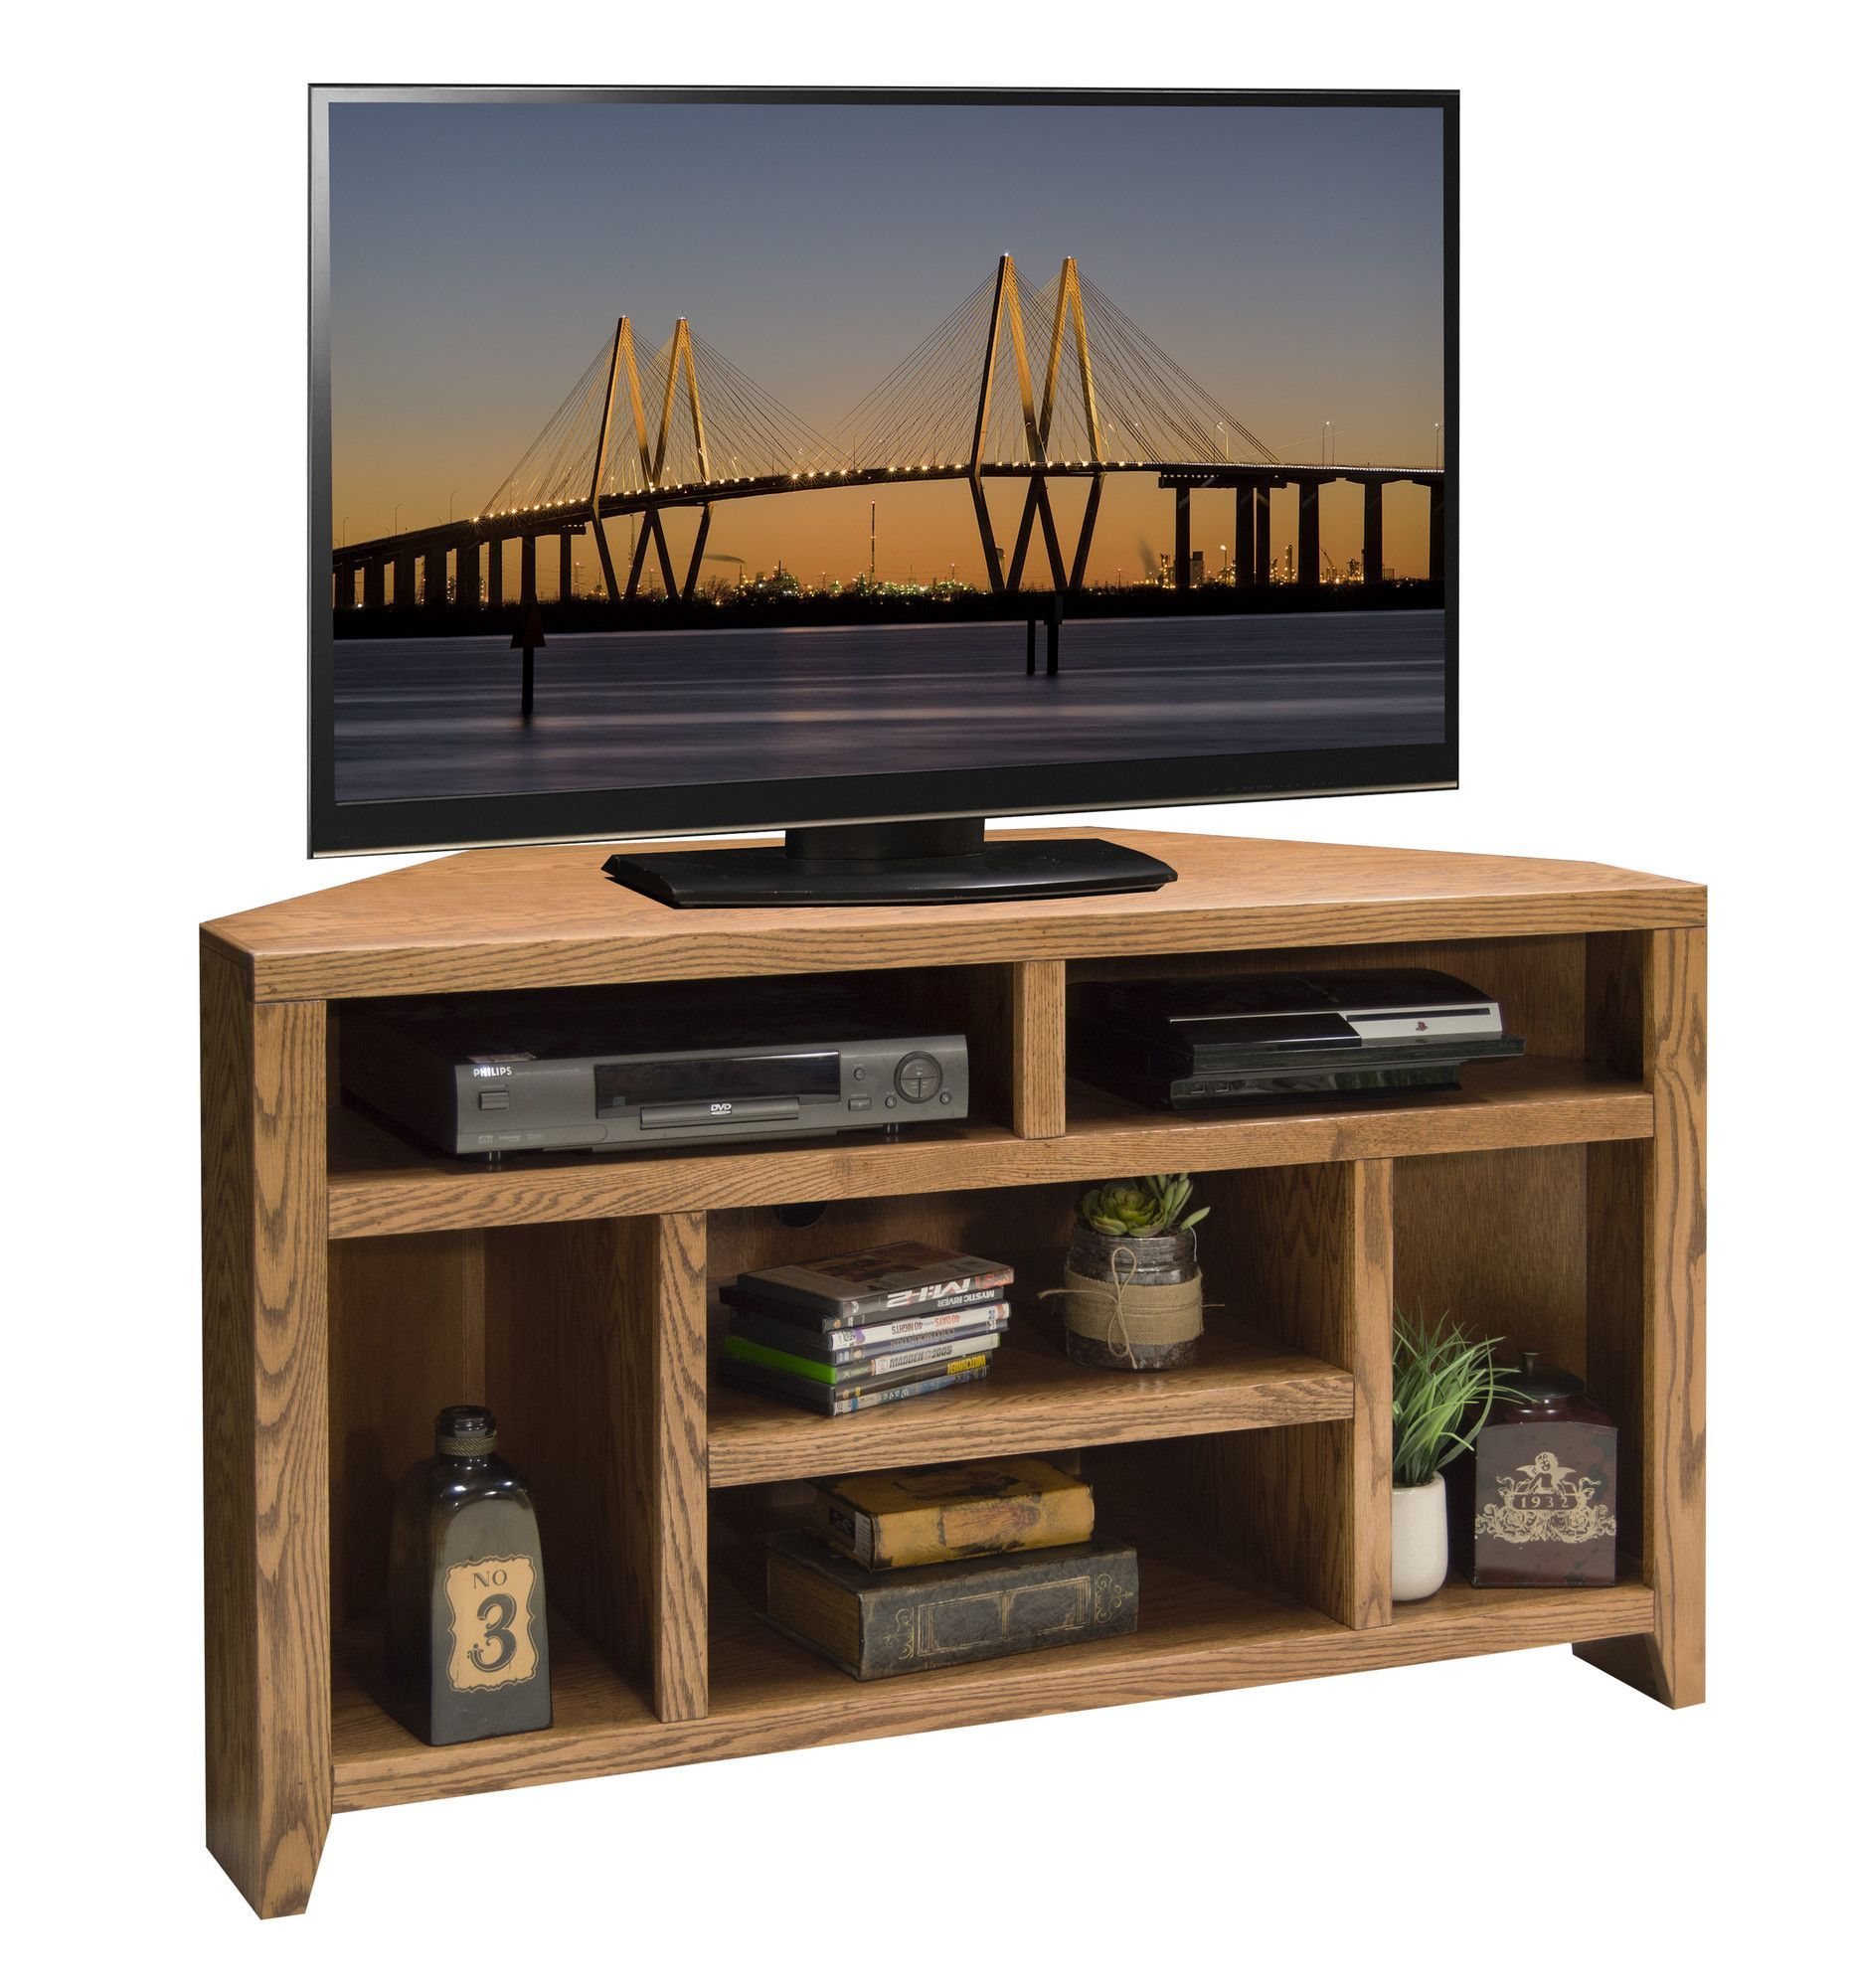 City Loft TV Stand                                                                                                                                                                                 More